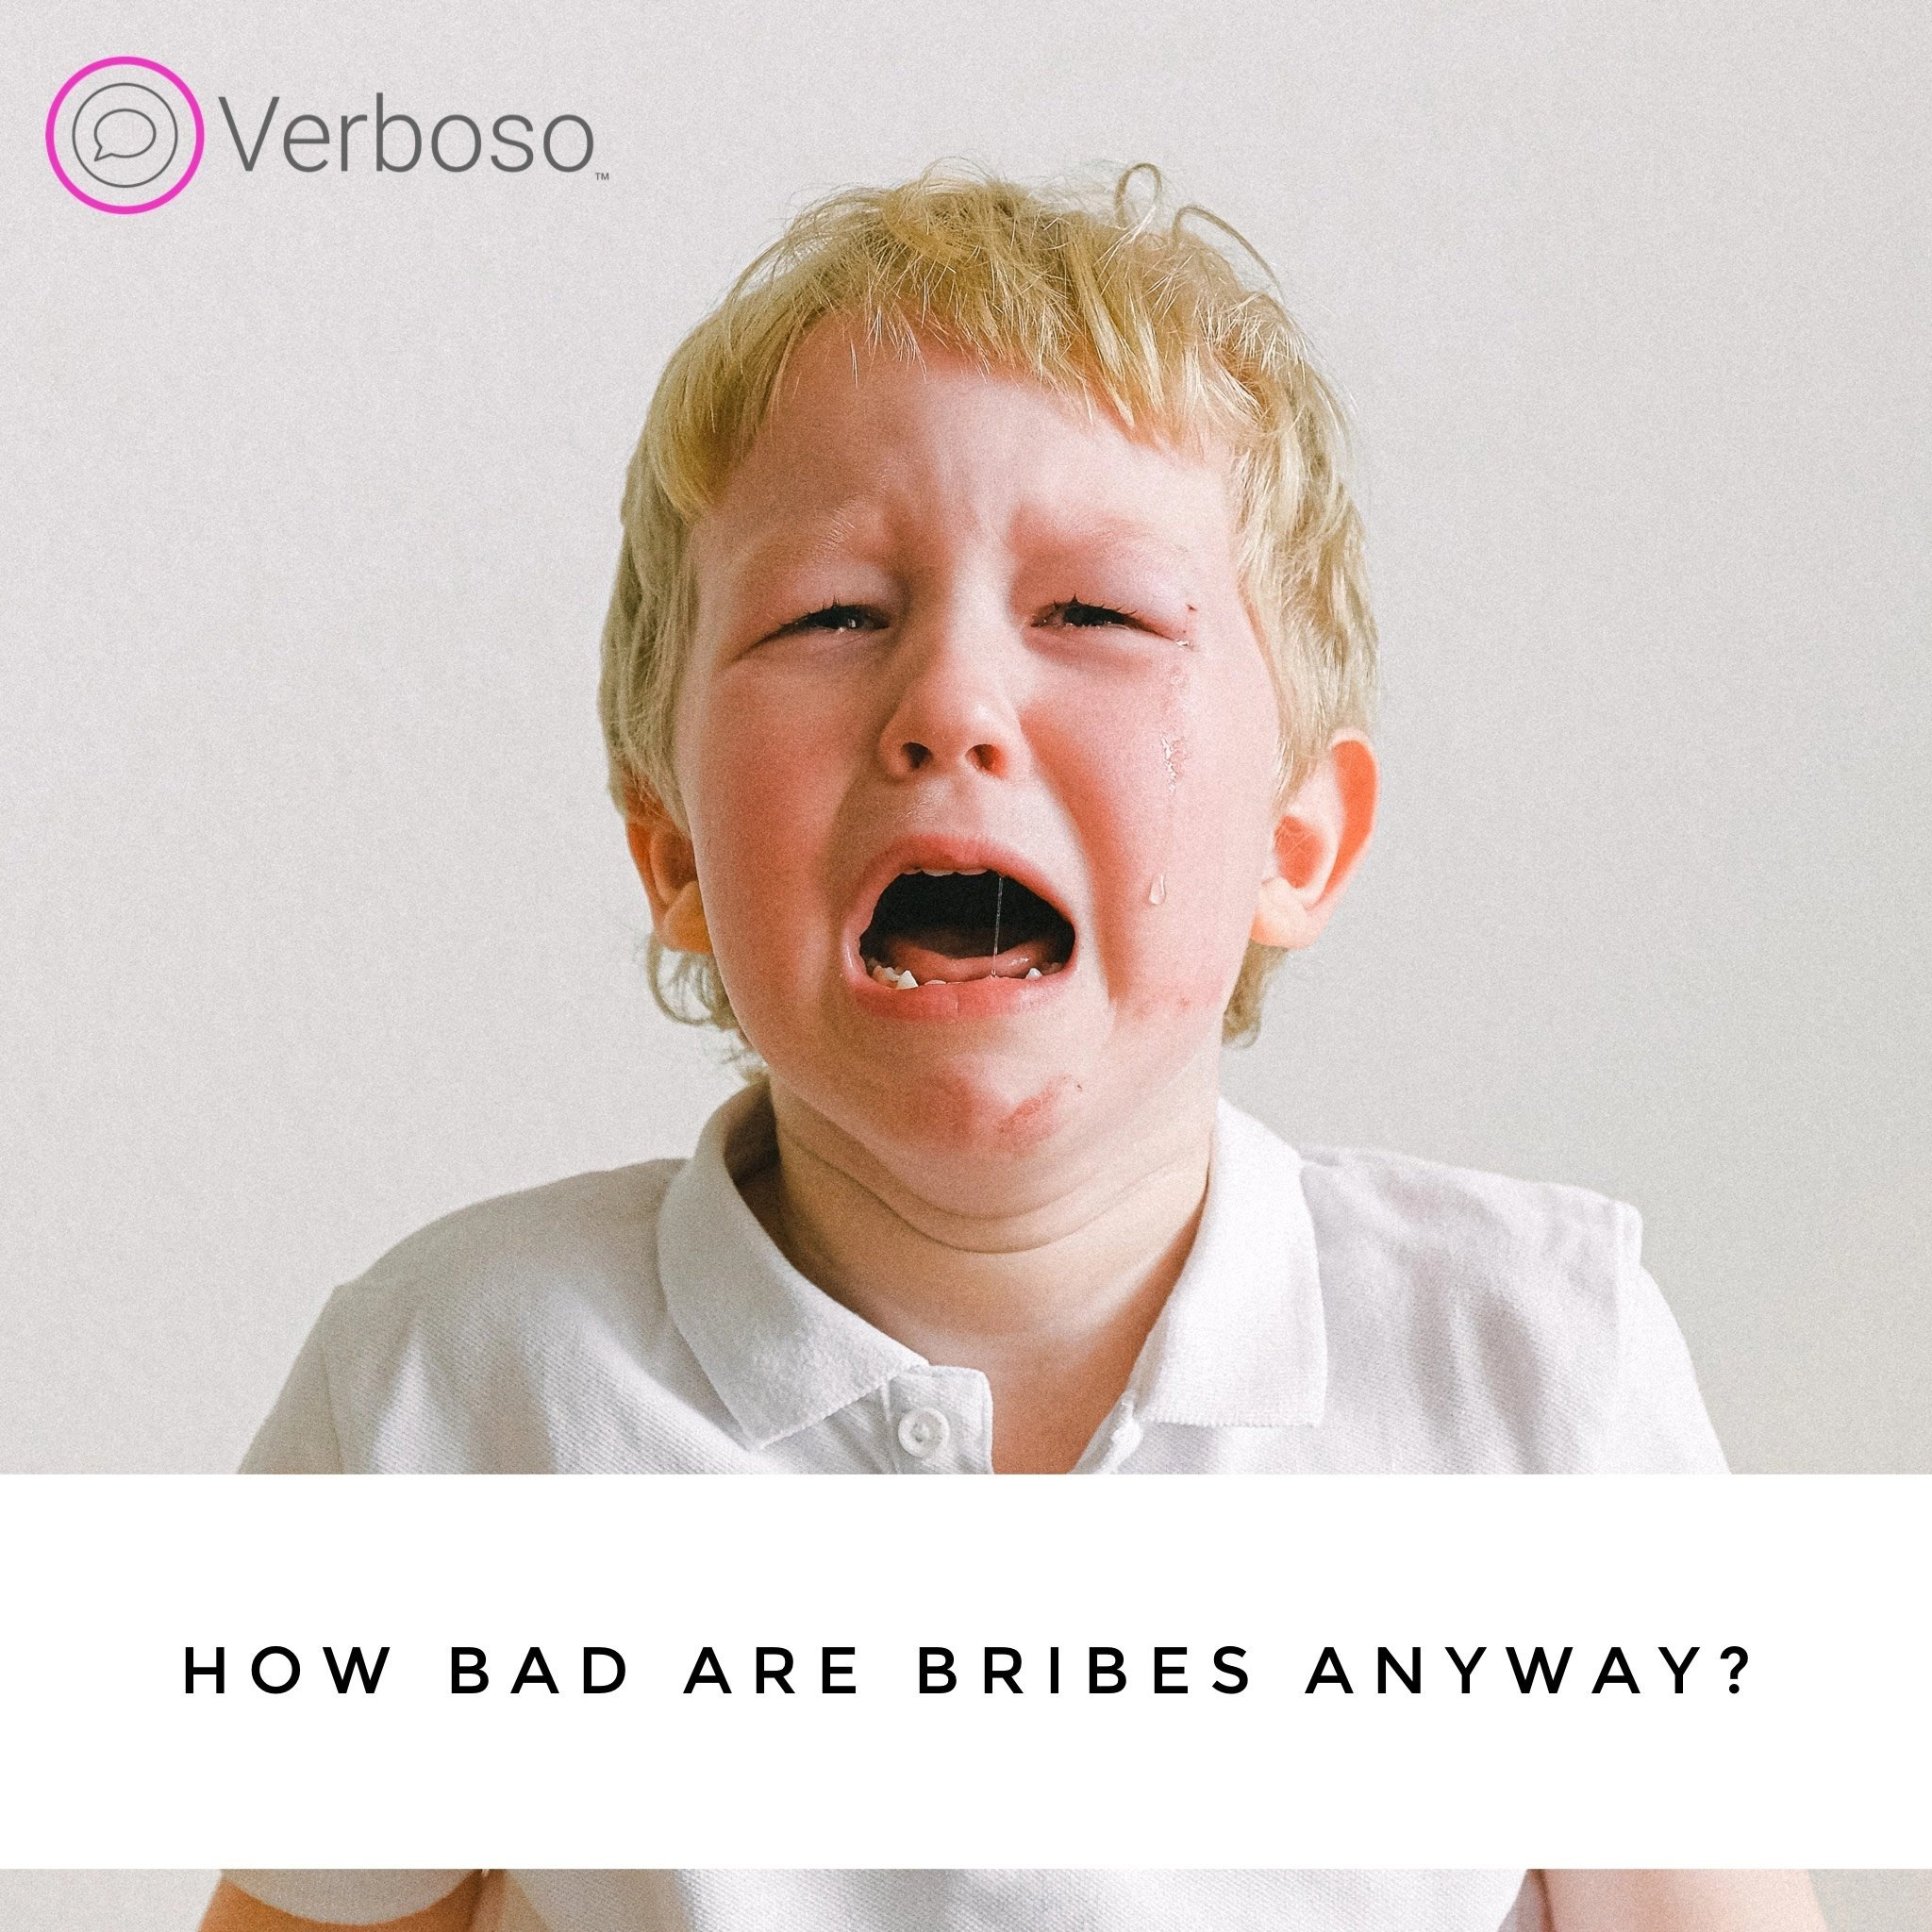 How Bad are Bribes Anyway?